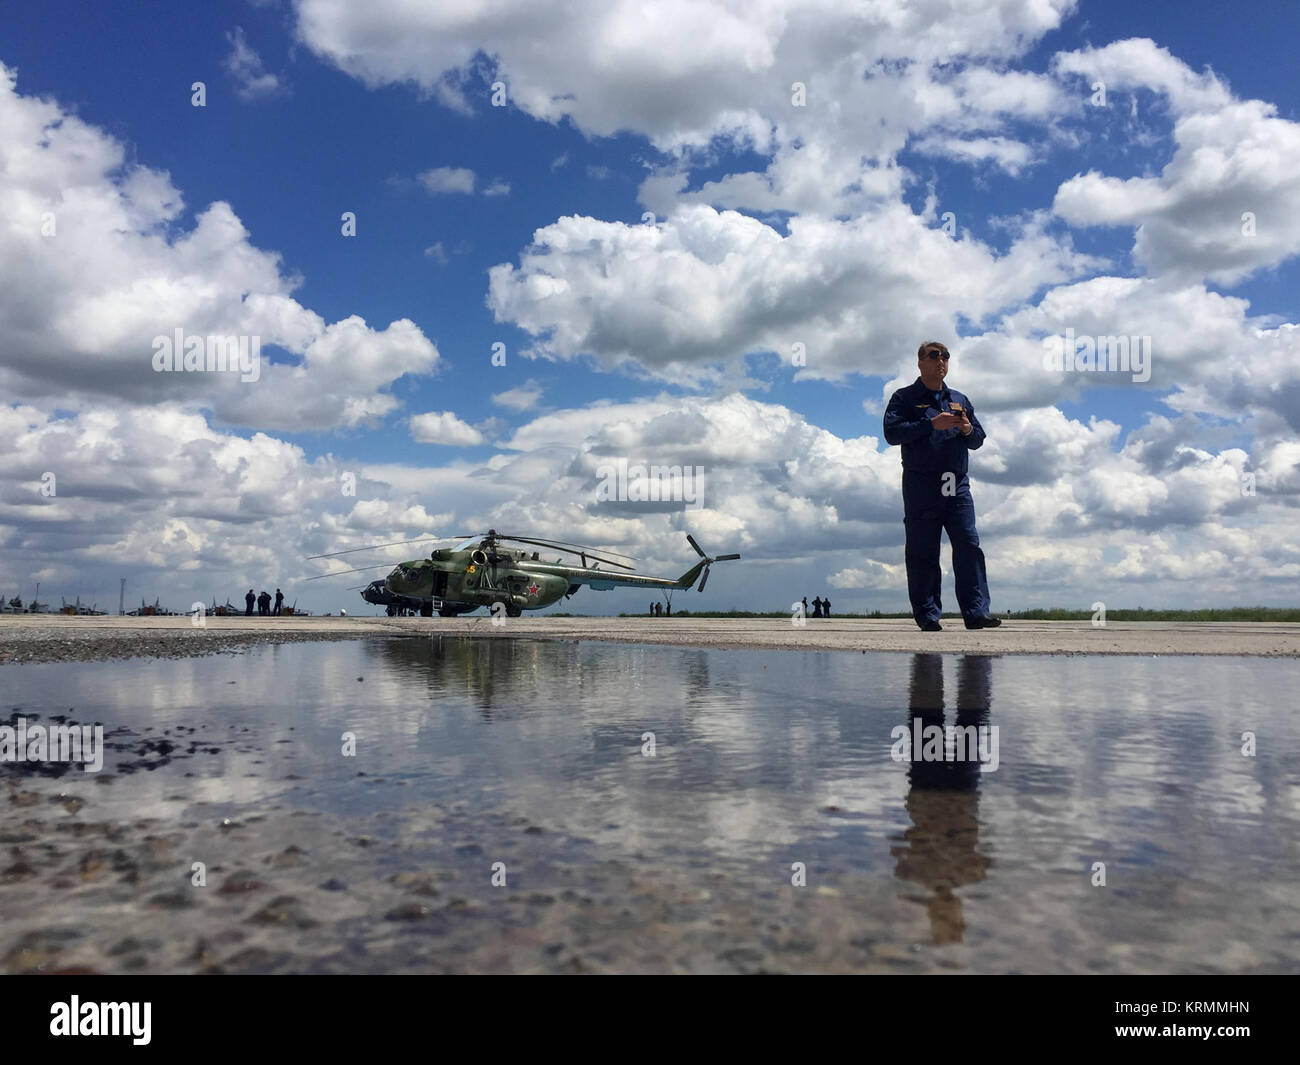 A Russian Search and Rescue MI-8 helicopter crew member waits to depart the Karaganda Airport ahead of the Soyuz - Stock Image